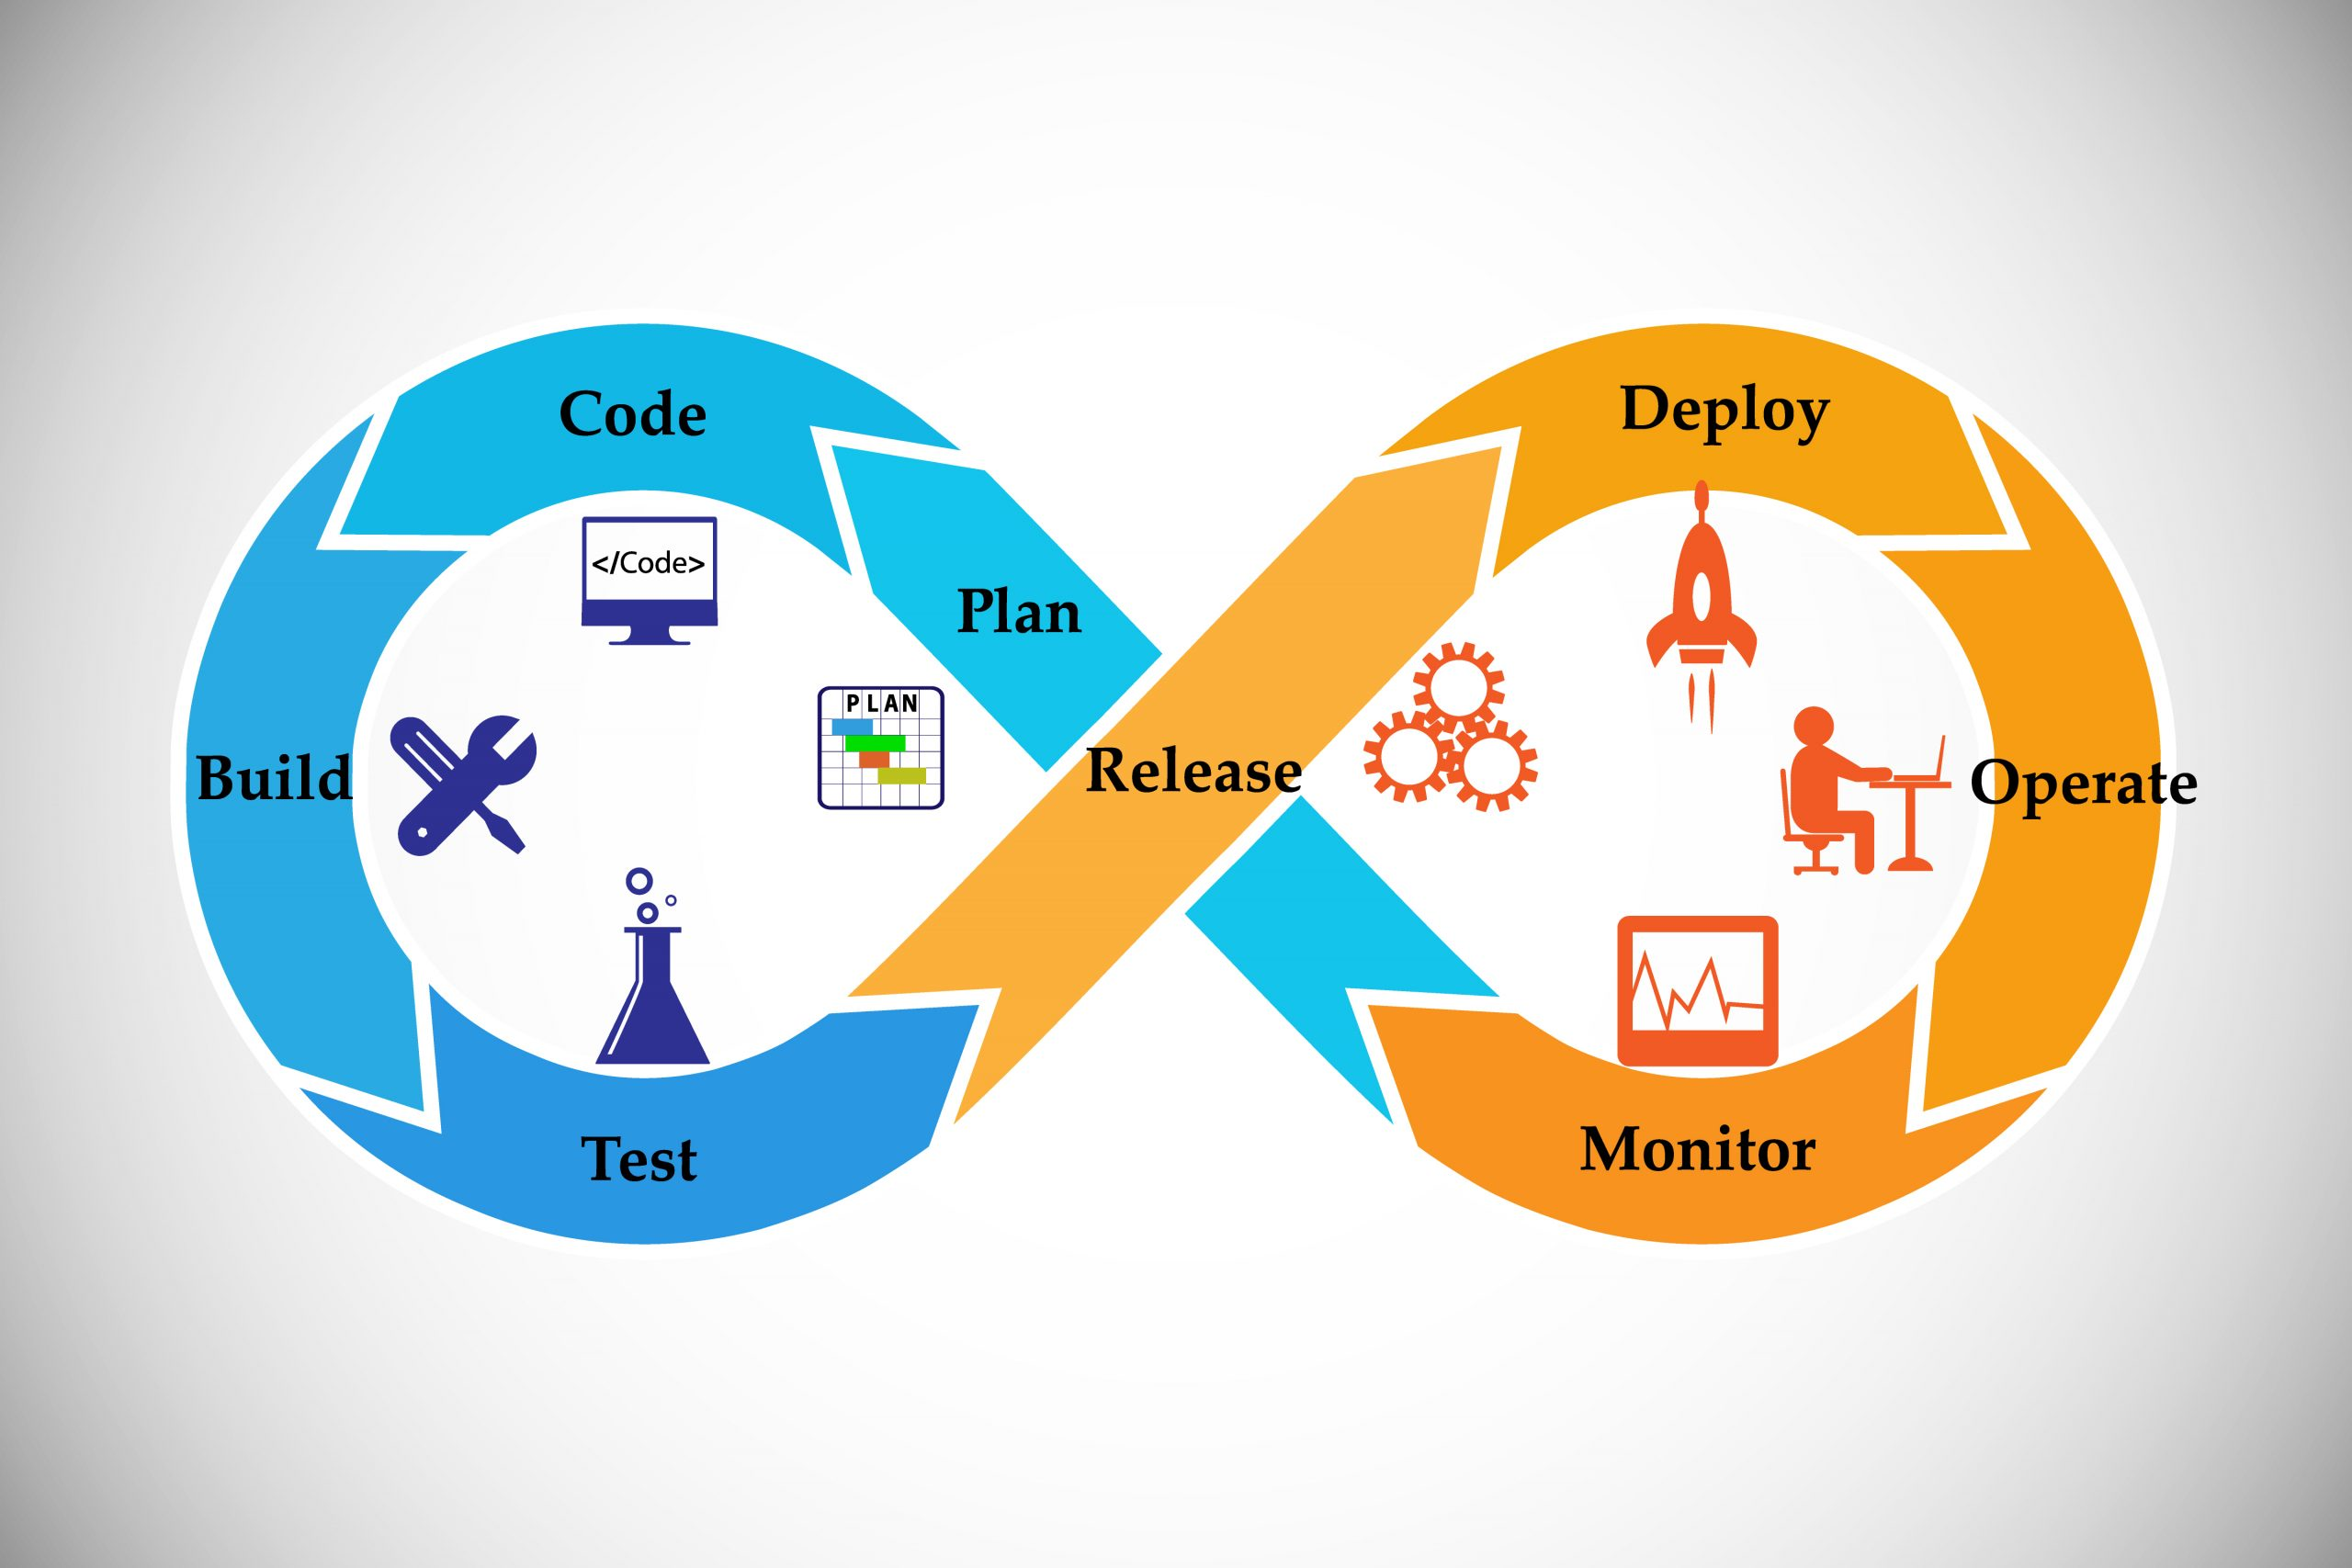 The role of DevOps in a software-led company